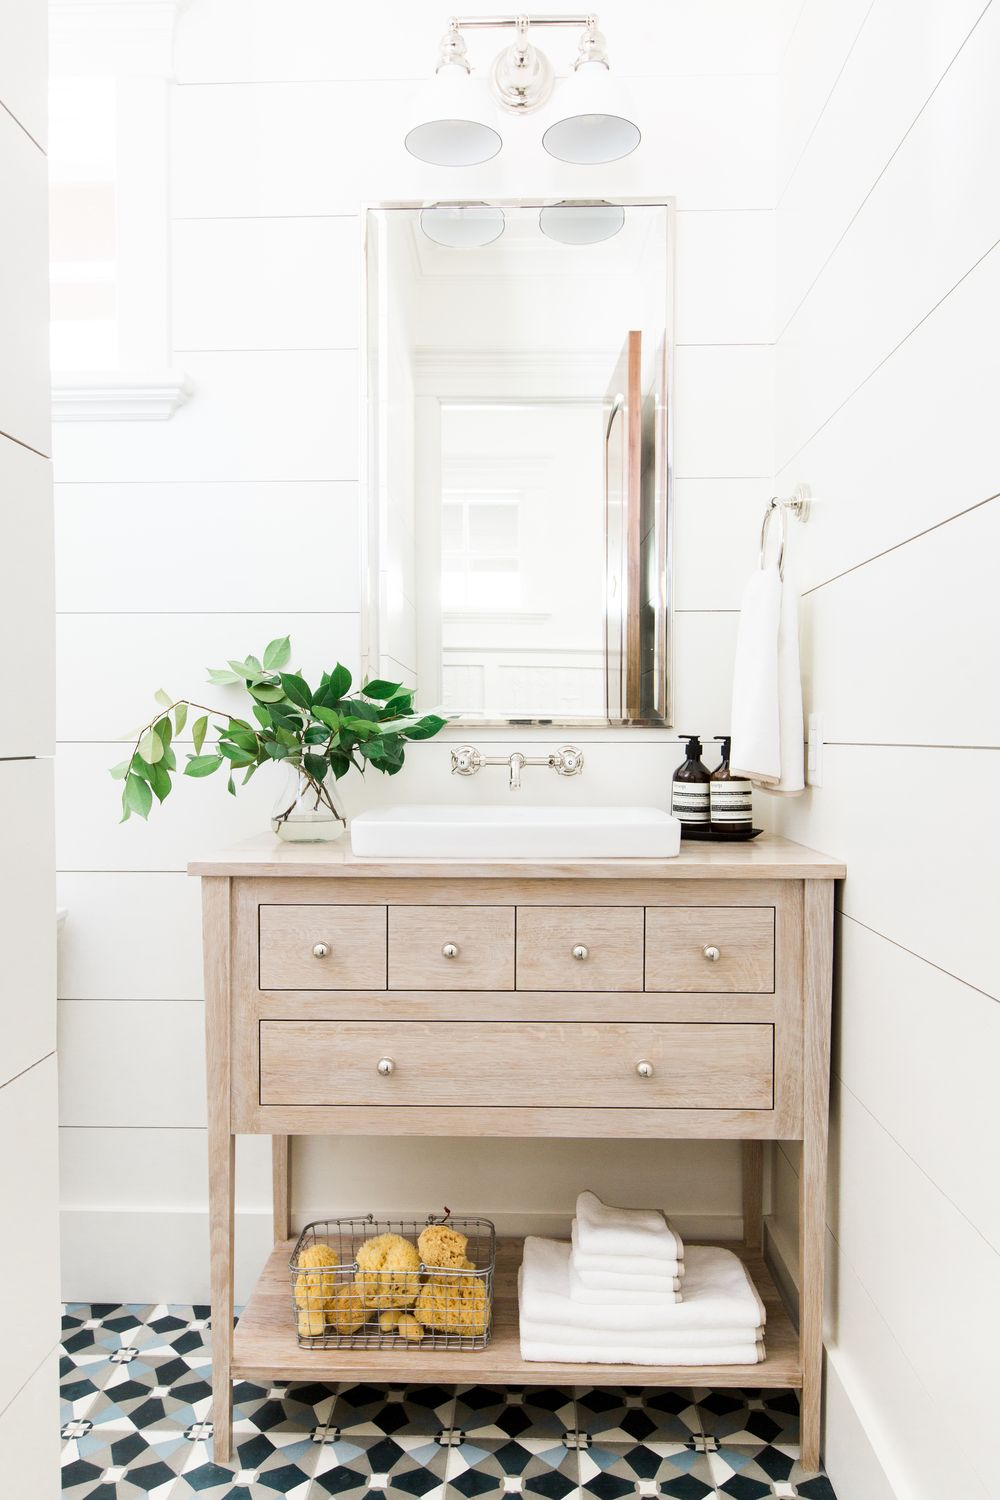 Mountainside remodel studio mcgee tile flooring and cement for Bathroom ideas with shiplap